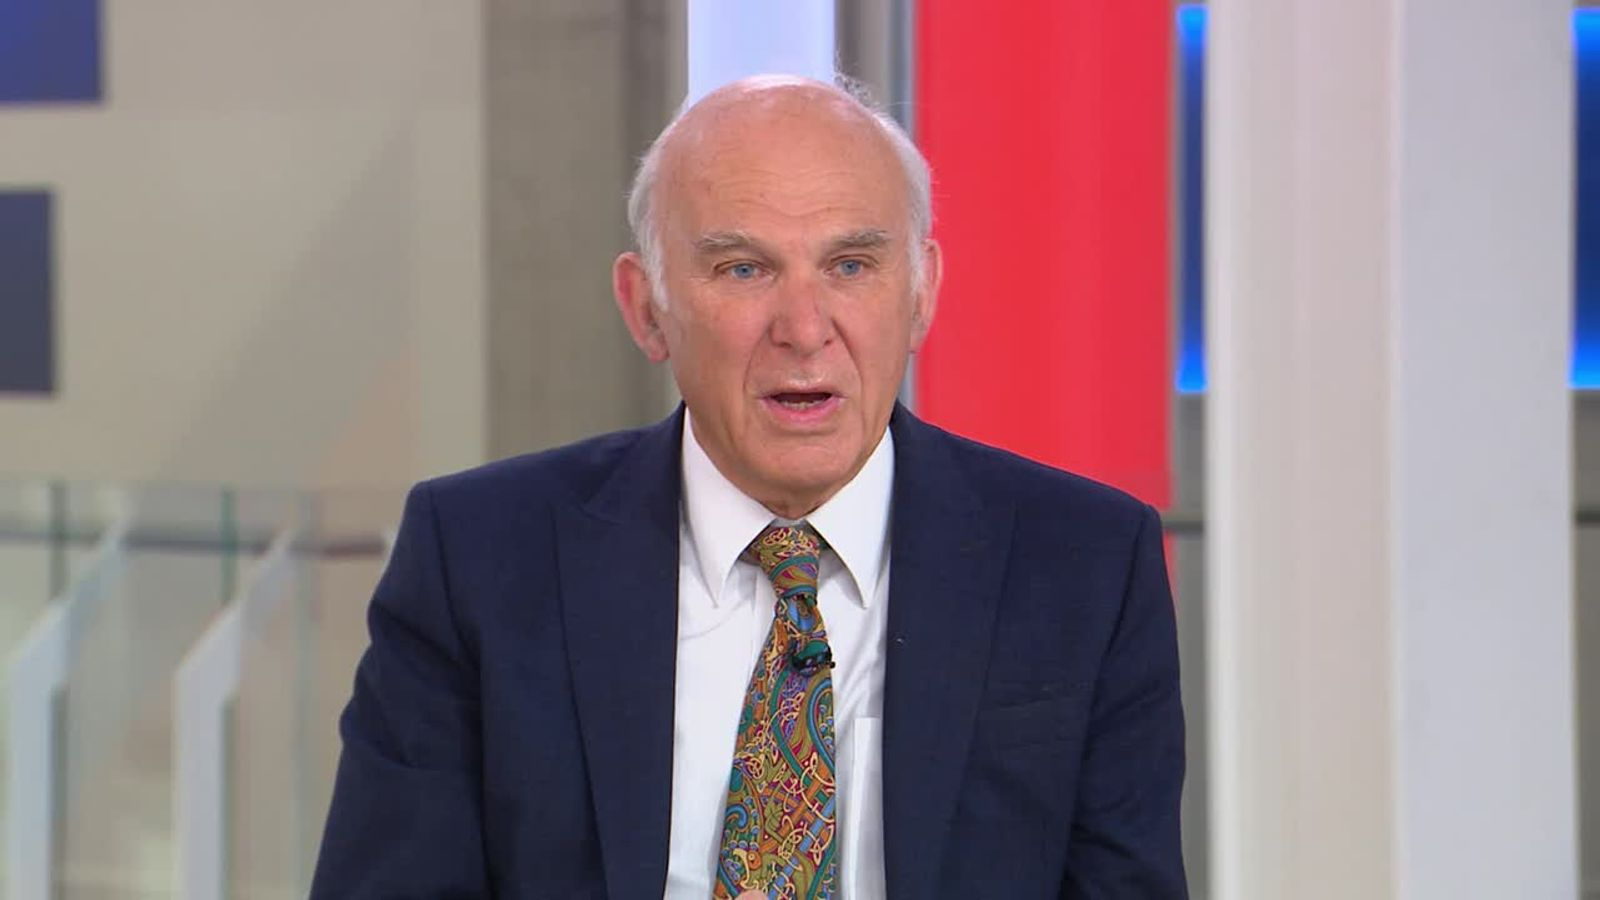 'Exit from Brexit': New Lib Dem leader Sir Vince Cable's promise